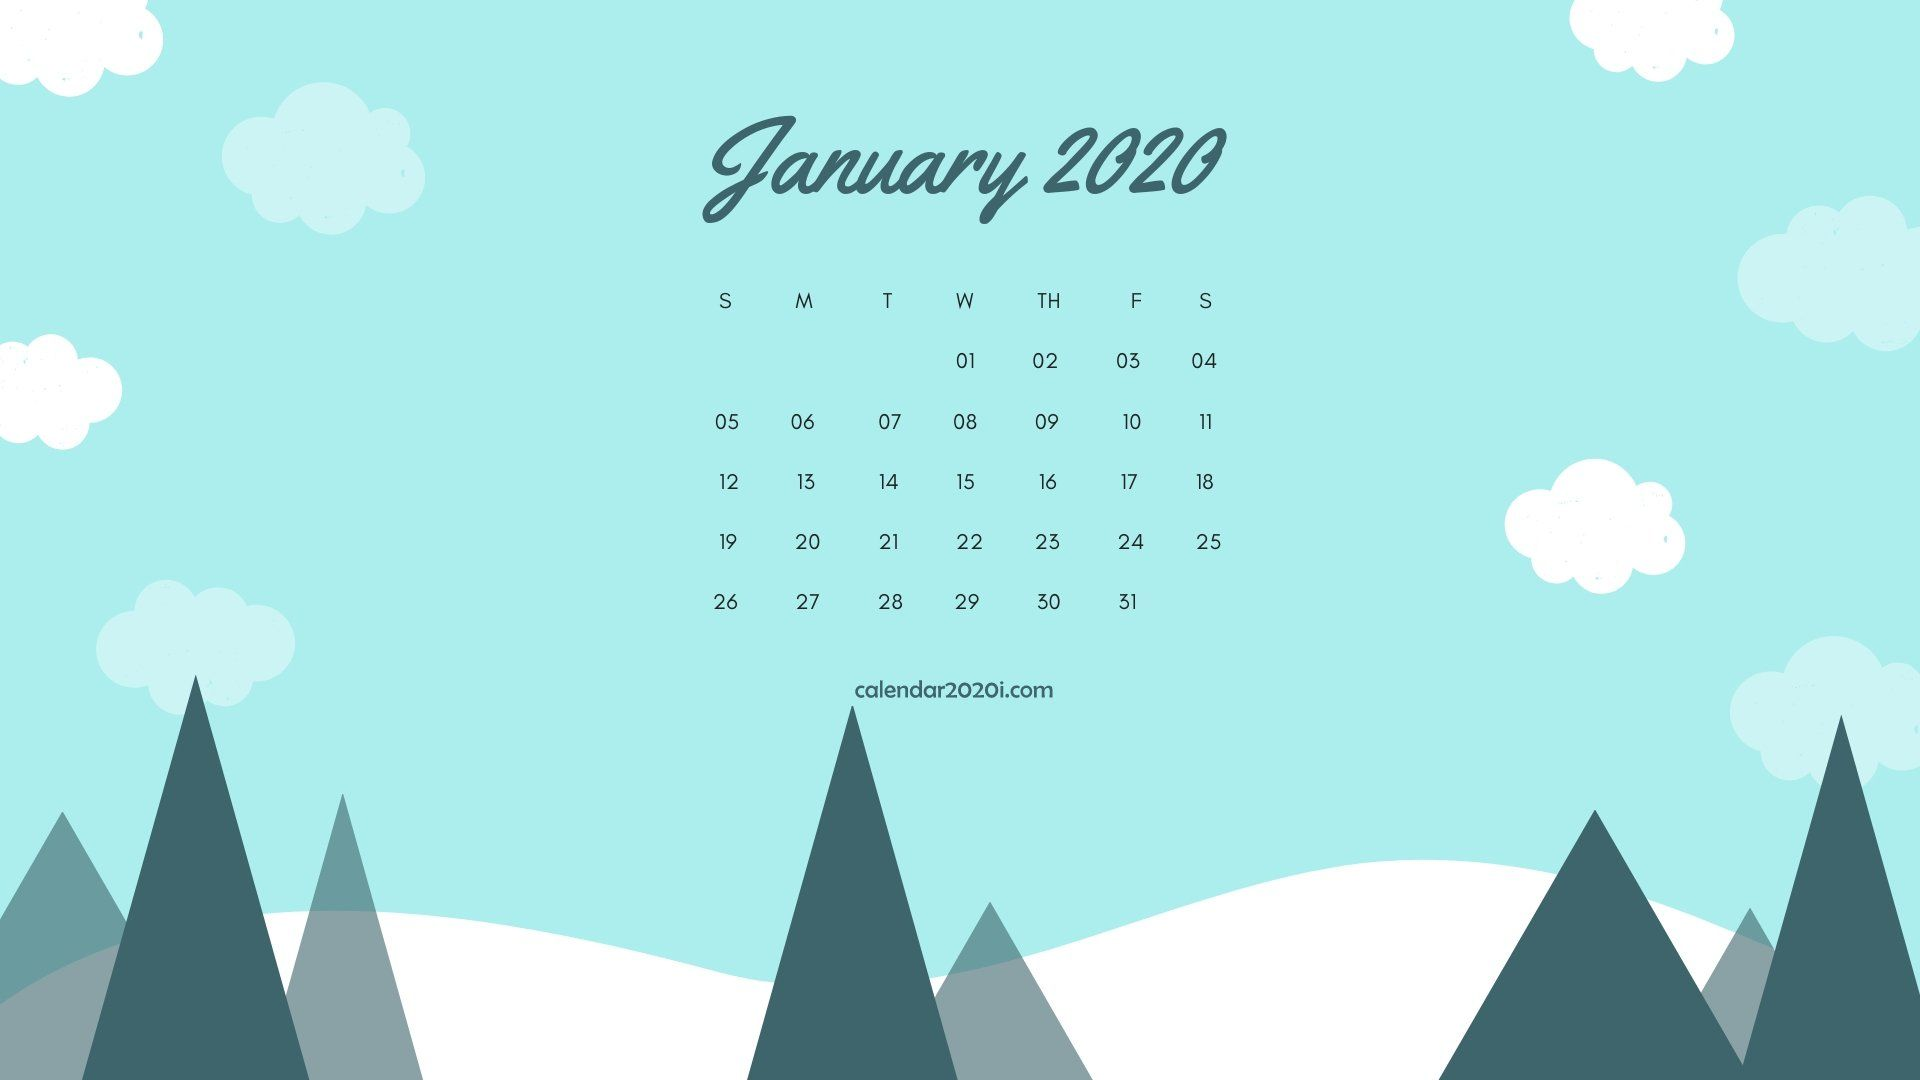 January 2020 Calendar Wallpapers   Top January 2020 Calendar 1920x1080